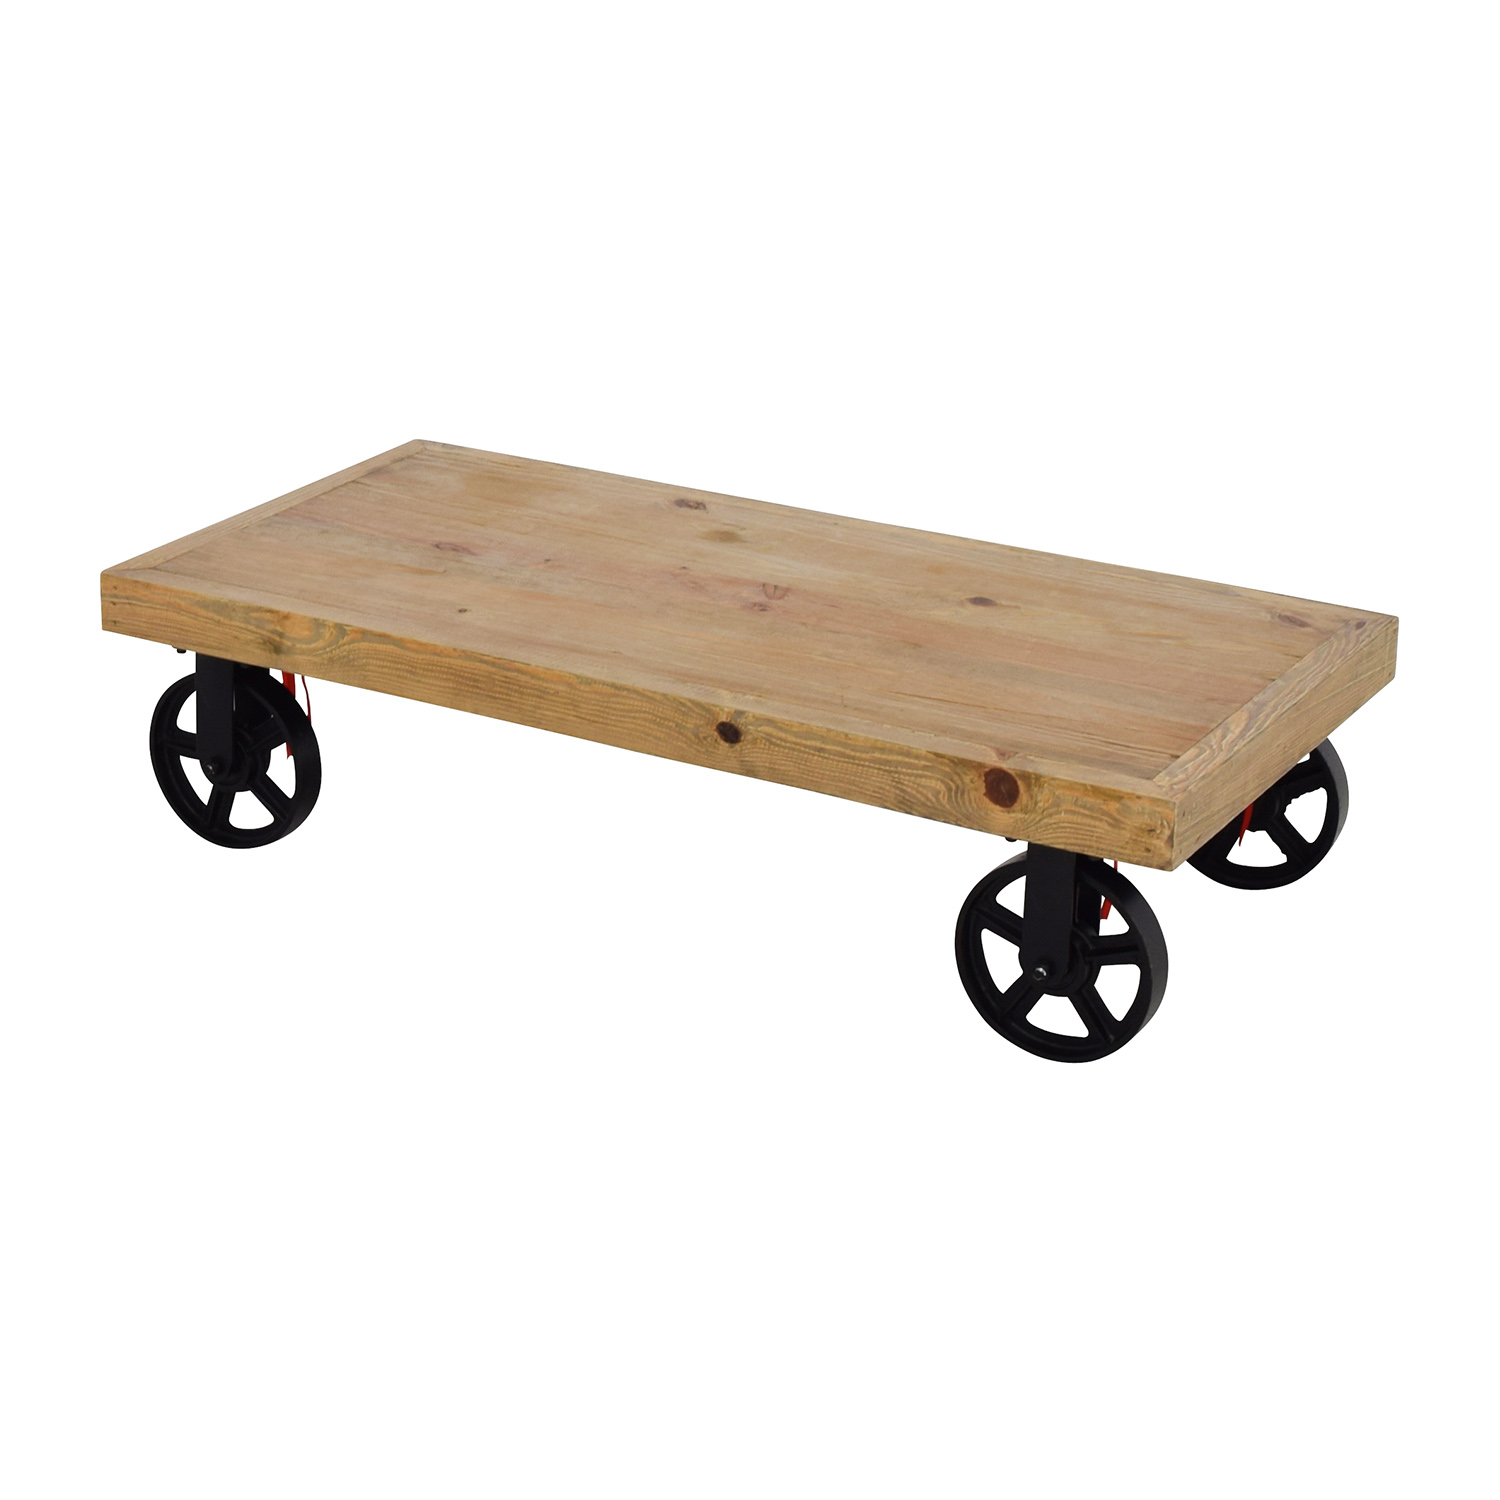 Cheap Factory Cart Coffee Tables: Rustic Cart Coffee Table / Tables